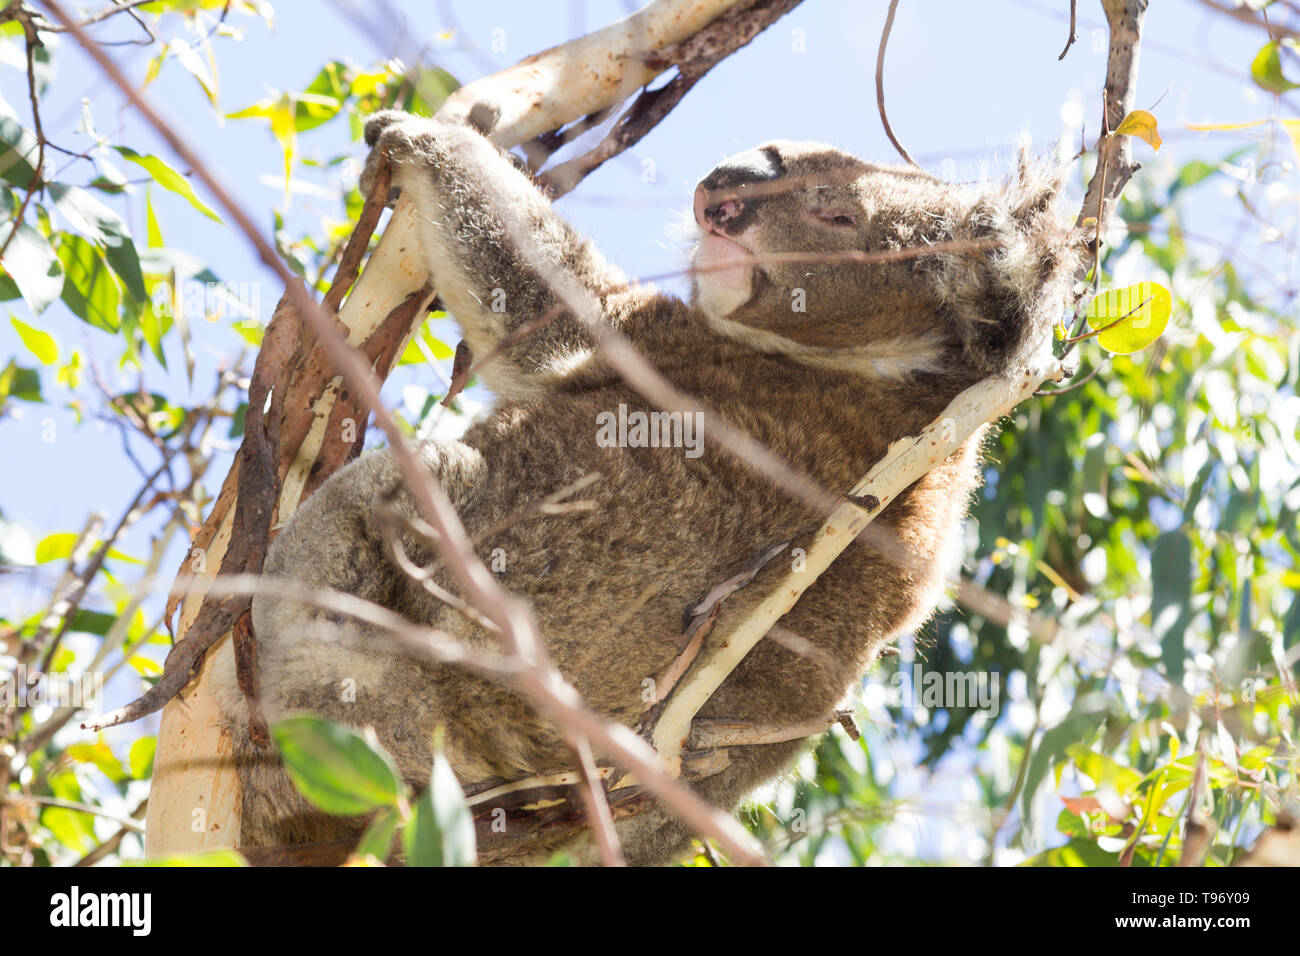 Koala eating eucalyptus in tree Melbourne Australia - Stock Image